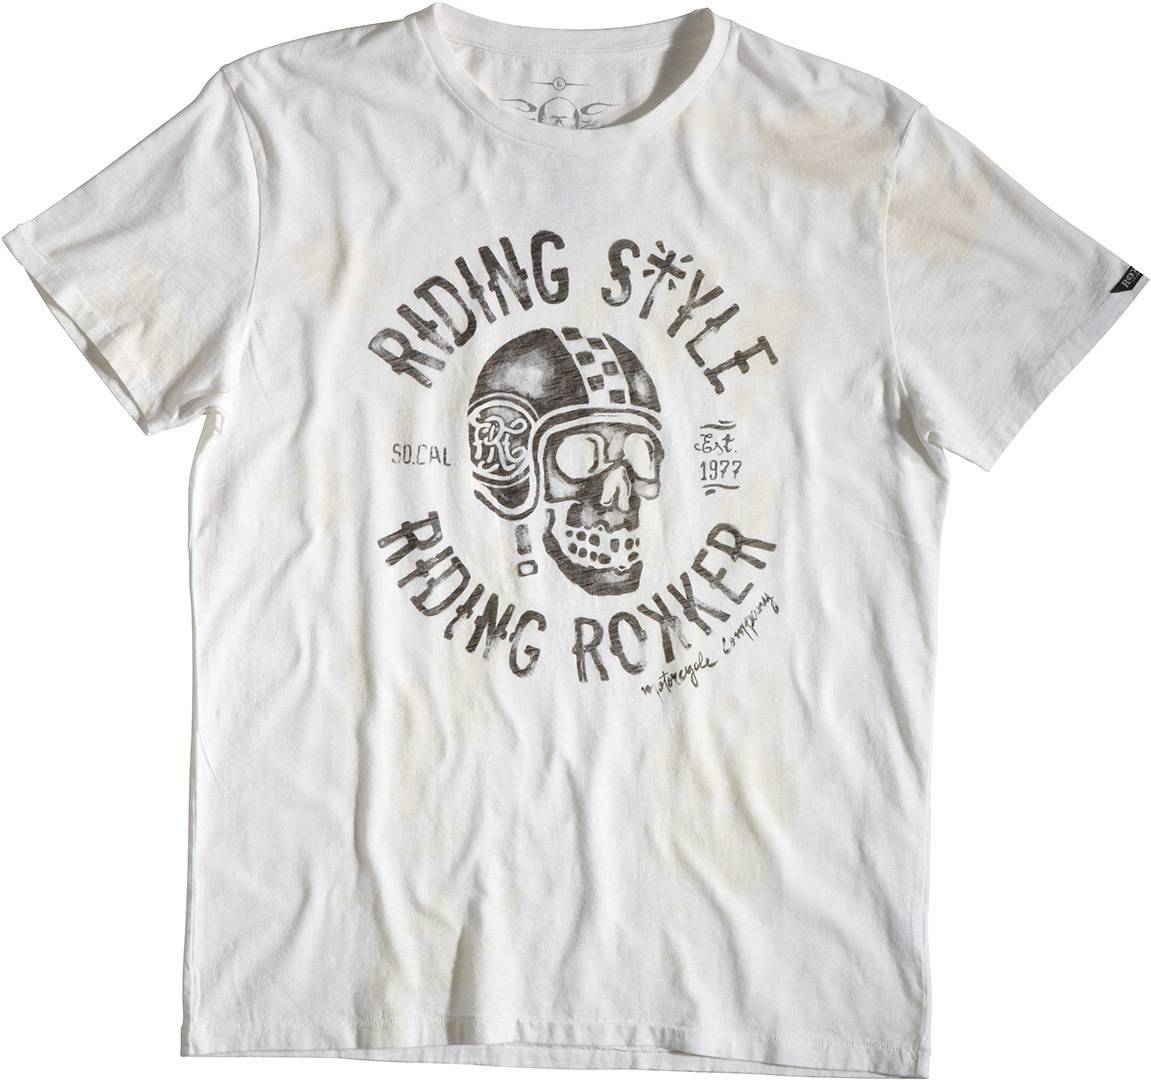 Rokker Riding T-Shirt Blanc taille : 3XL